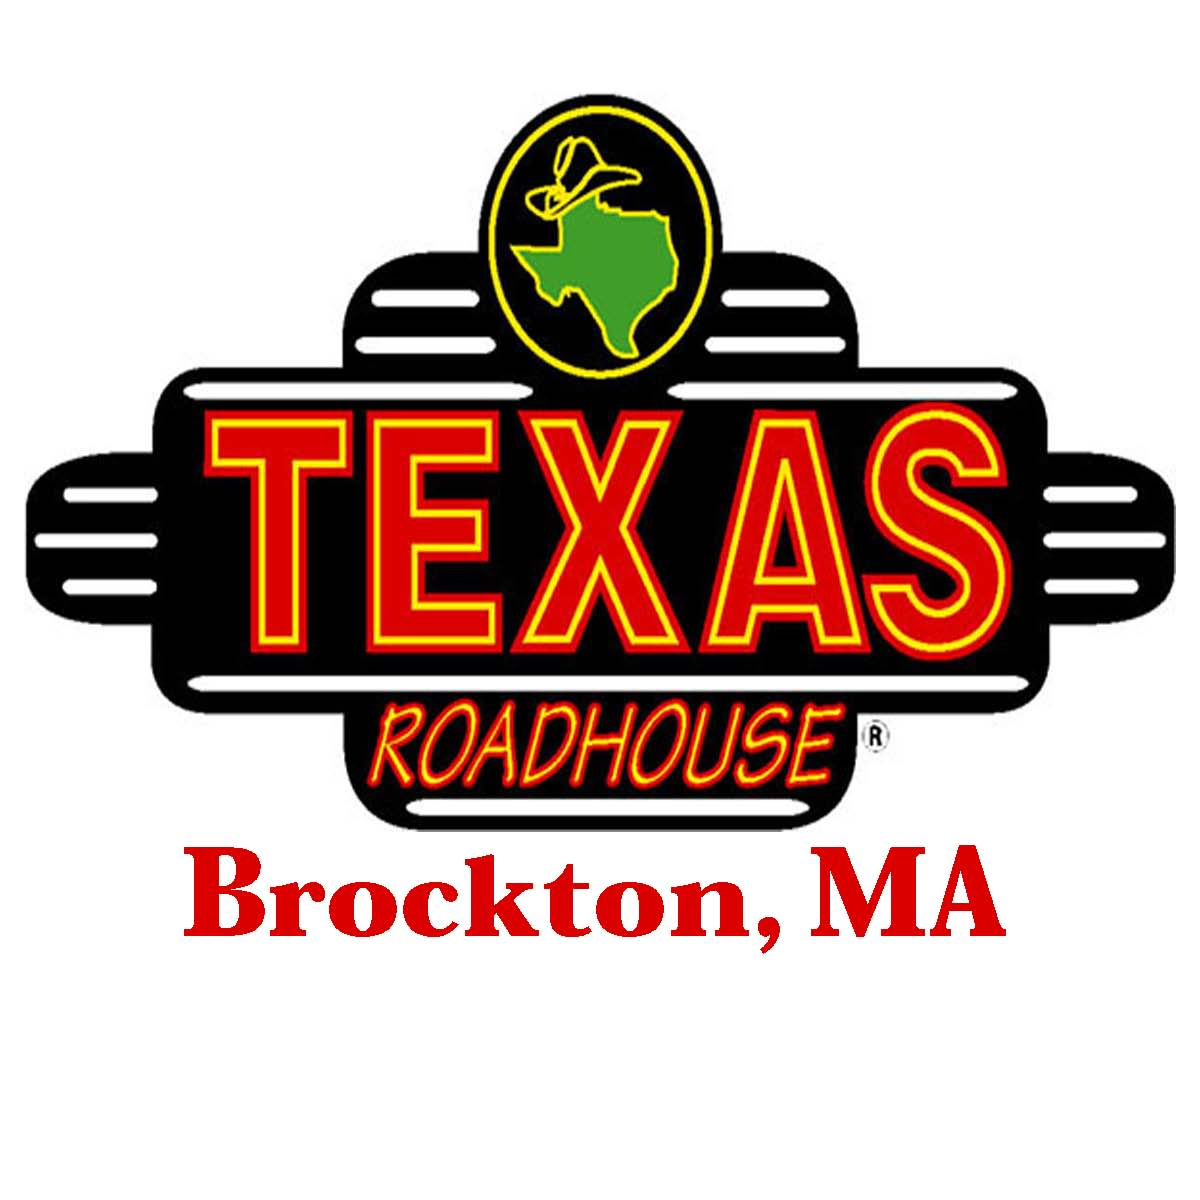 Texas_Roadhouse_LOGO.jpg